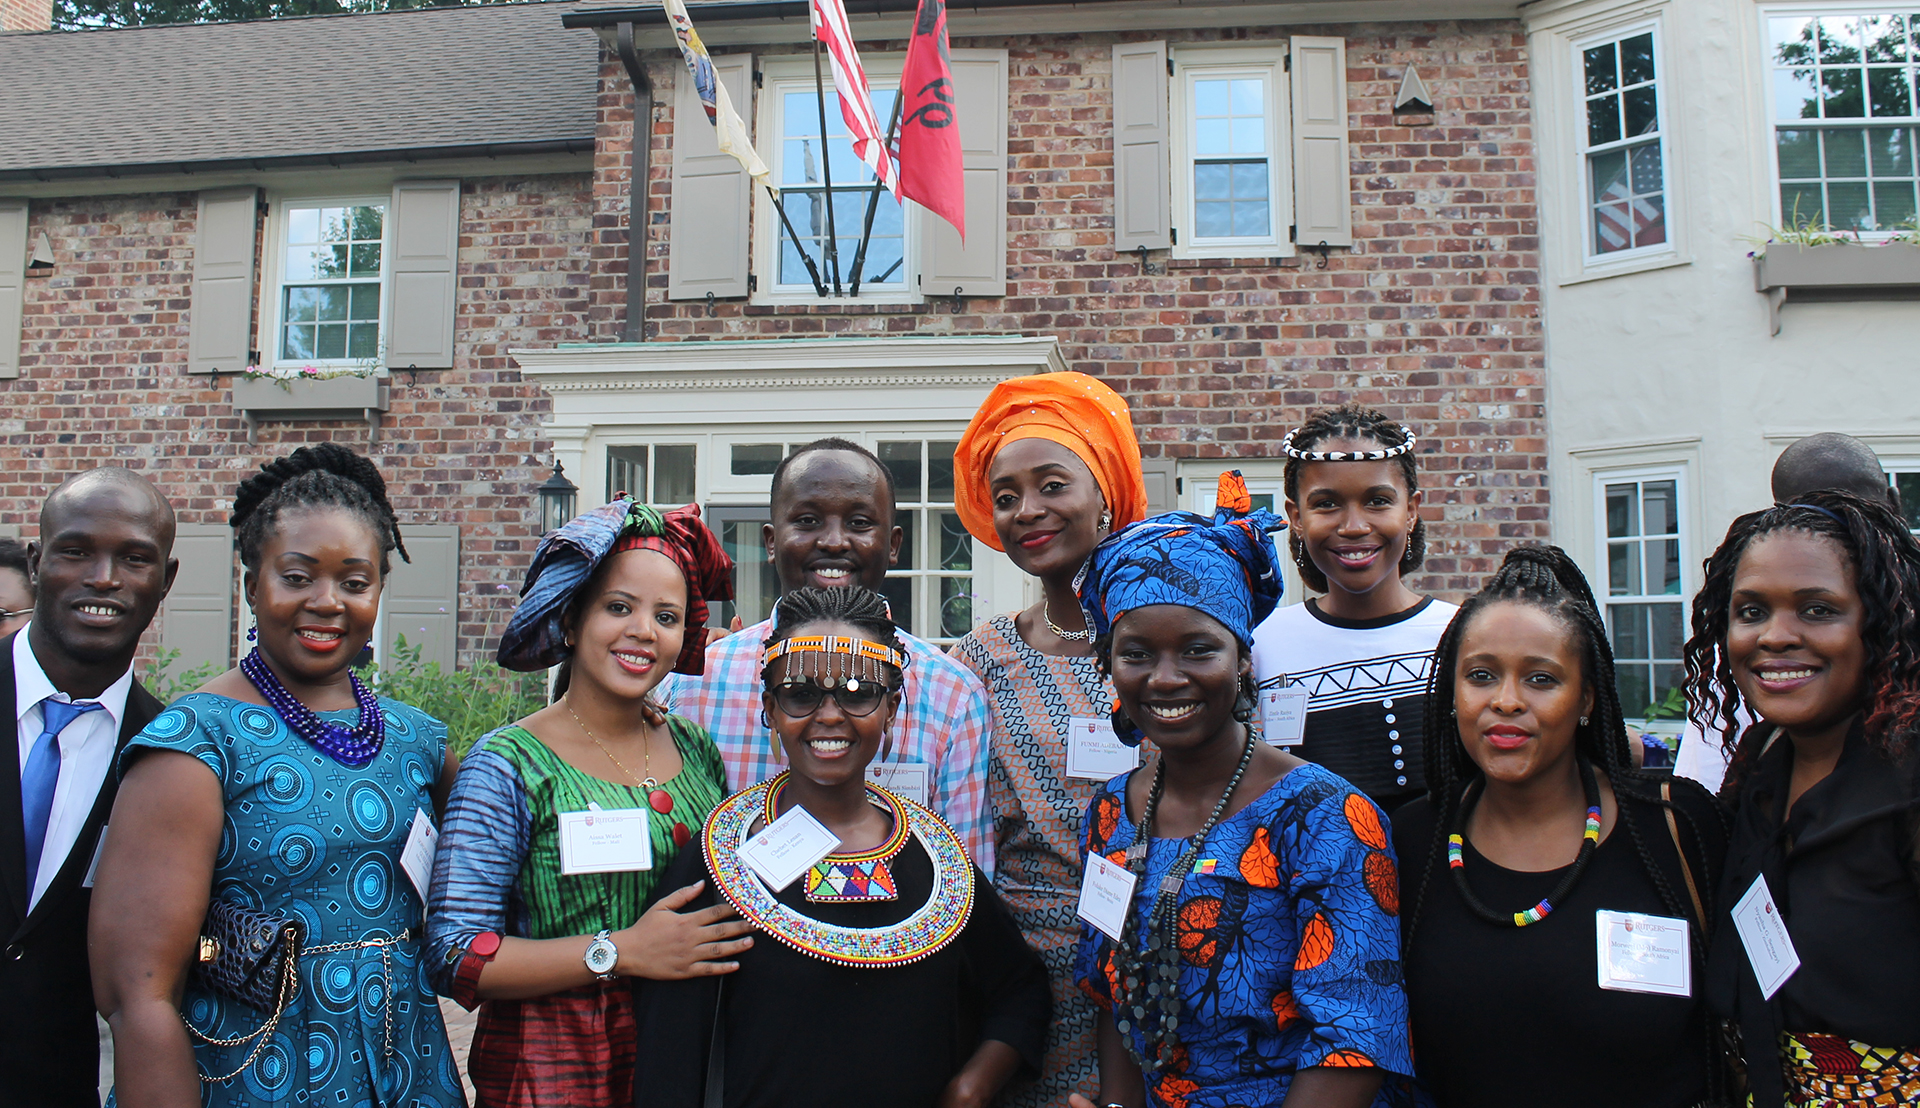 Rutgers Global - Mandela Washington Fellowship, group of fellows posing for photo outdoors at Rutgers